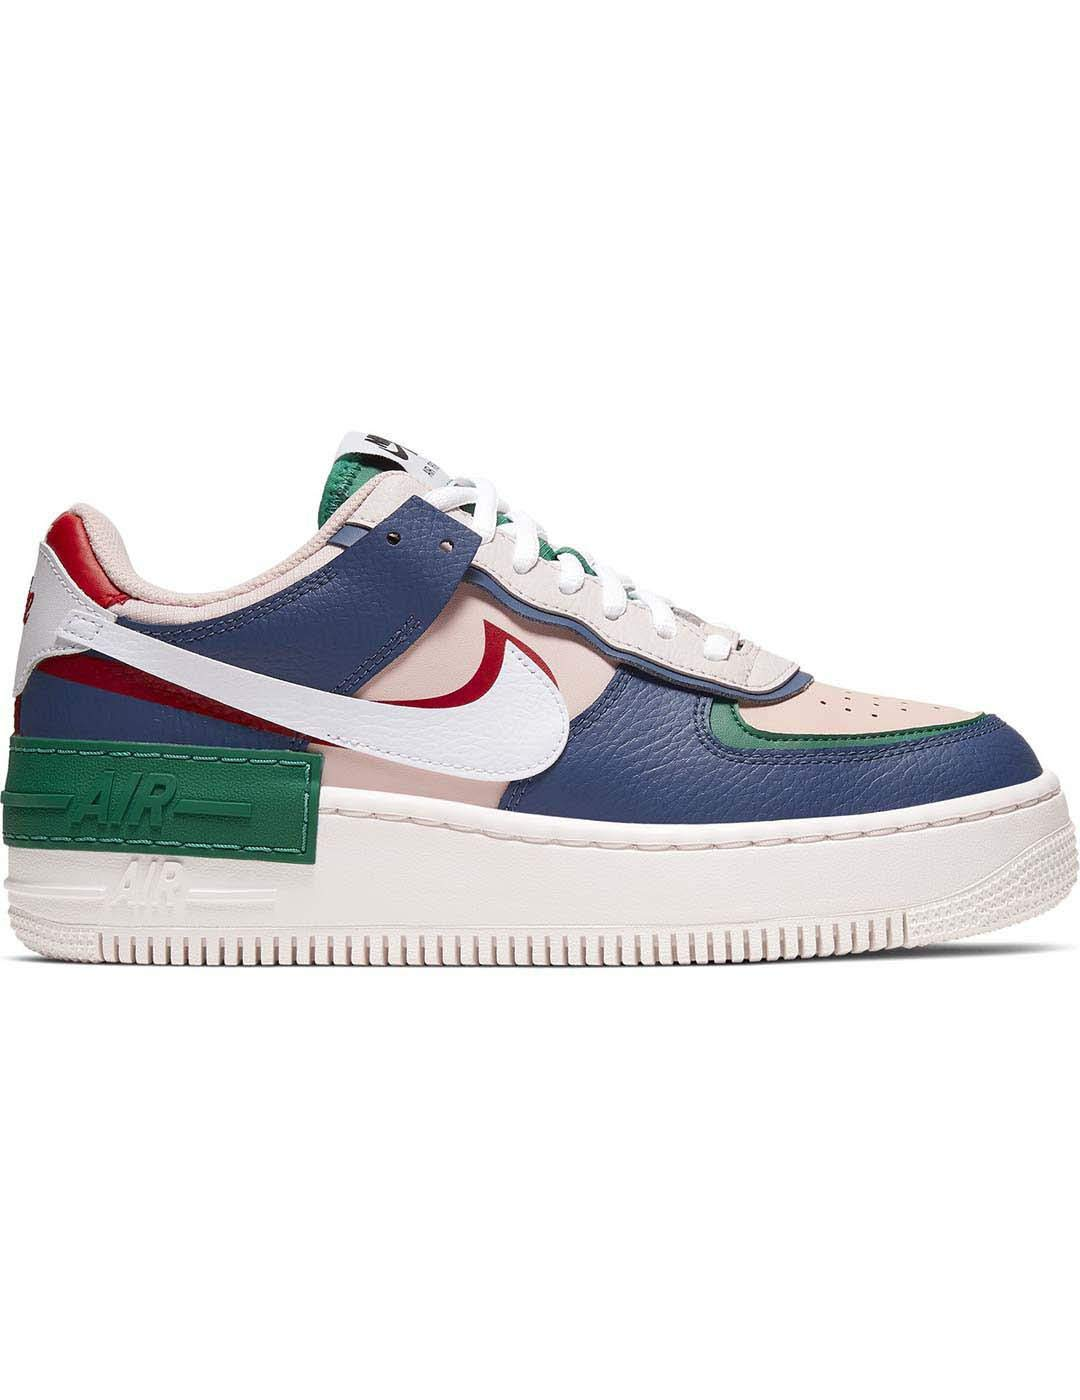 Nike Women S Air Force 1 Shadow Trainers Buy Online In Qatar At Desertcart Check out our custom nike air force 1 selection for the very best in unique or custom, handmade pieces from our shoes shops. air force 1 shadow trainers